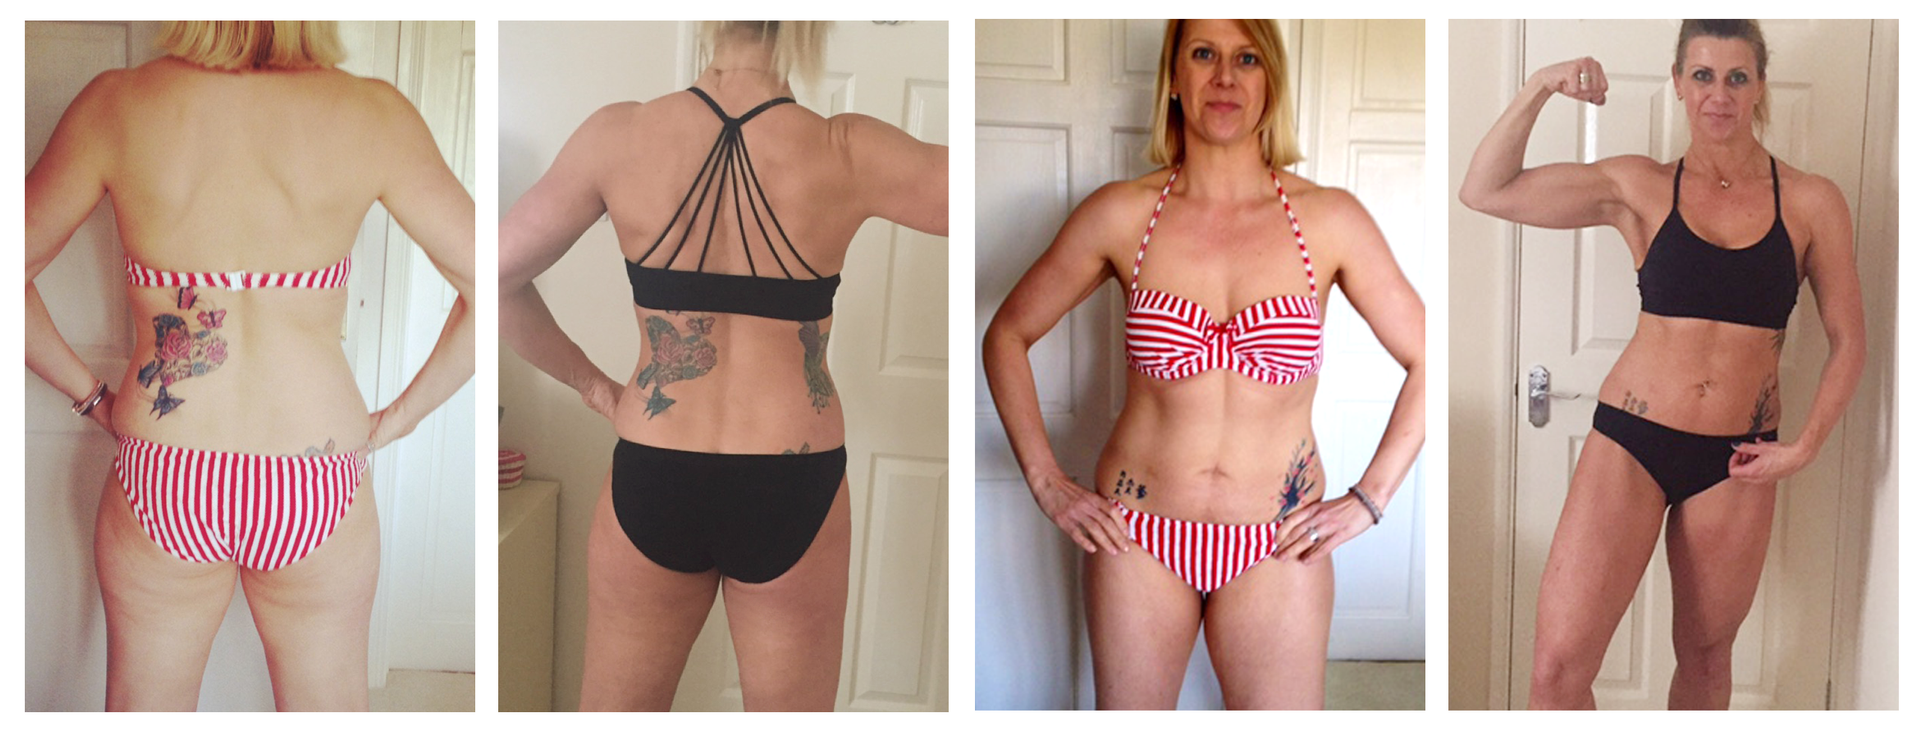 Training with KO Optimal Health is one of the best decisions I have ever made .... after years of training on my own not getting the results I desired .. Kimberly listened and took my training and me to where I wanted to be .... You really don't know what you can do until you have someone pushing and driving you too it ... Thank you Lisa